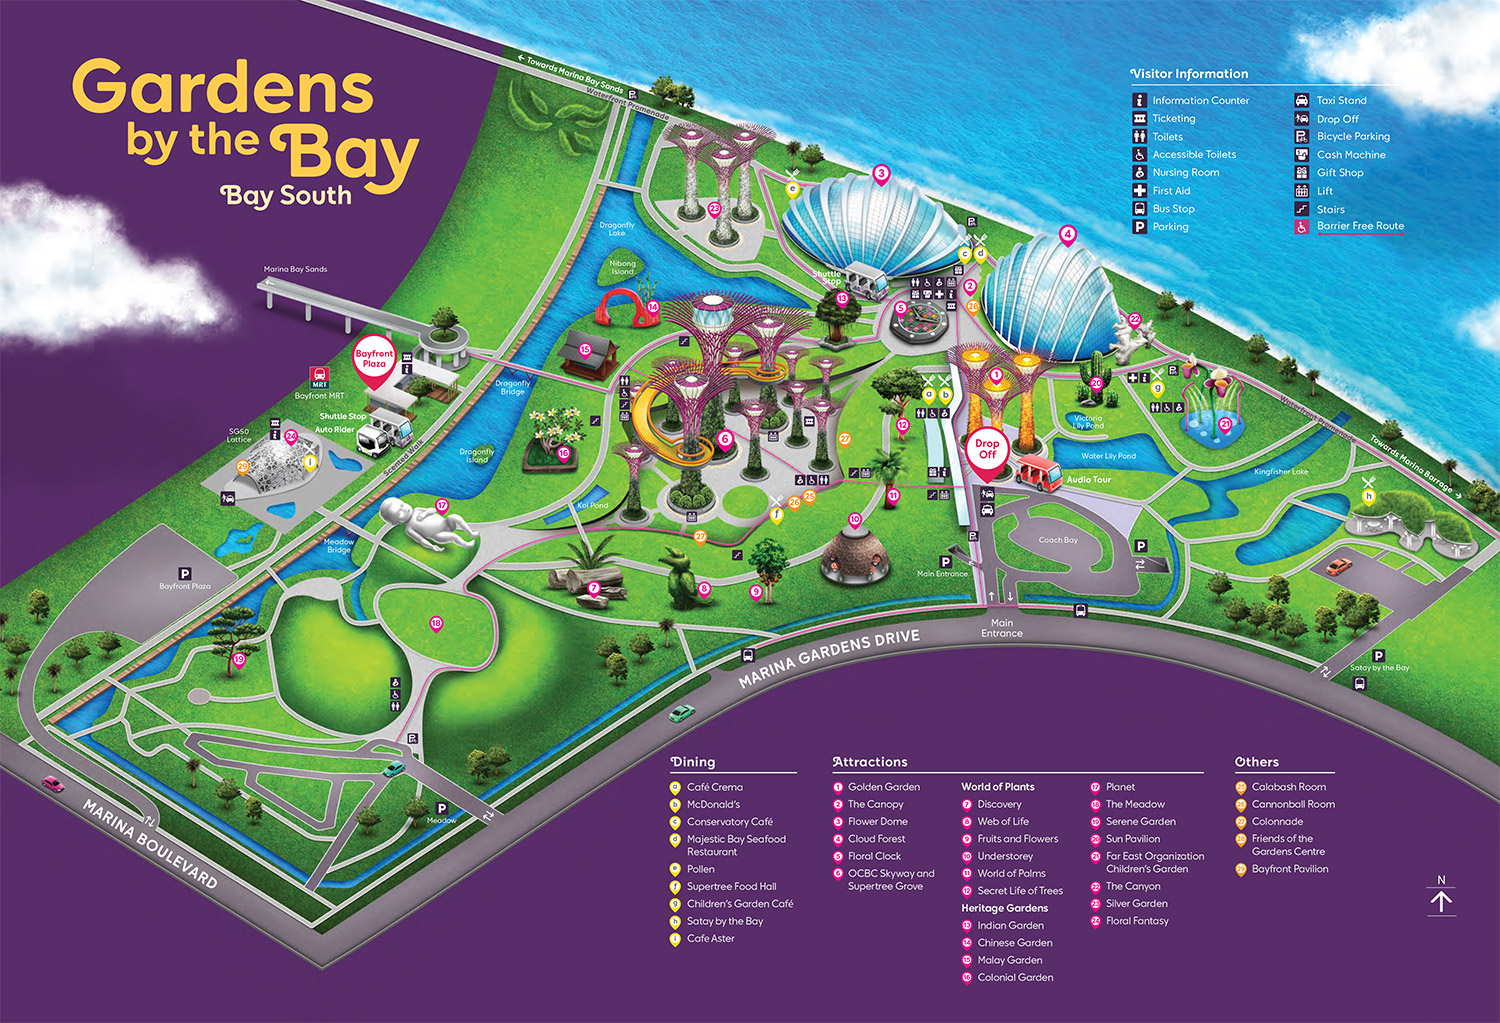 gardens by the bay map sept2020 - Gardens By The Bay Entrance Fee 2018